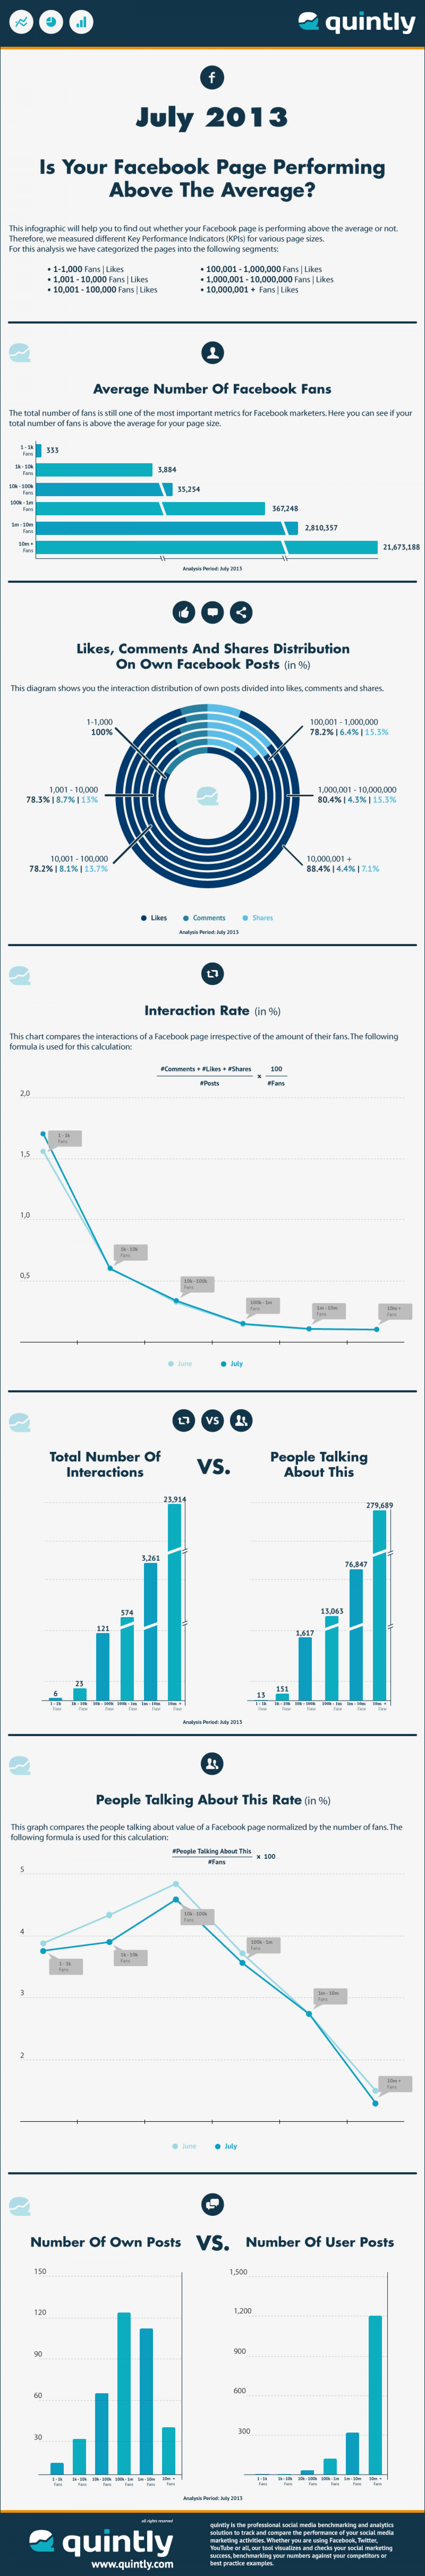 The Average Facebook Page Performance For July 2013 Infographic